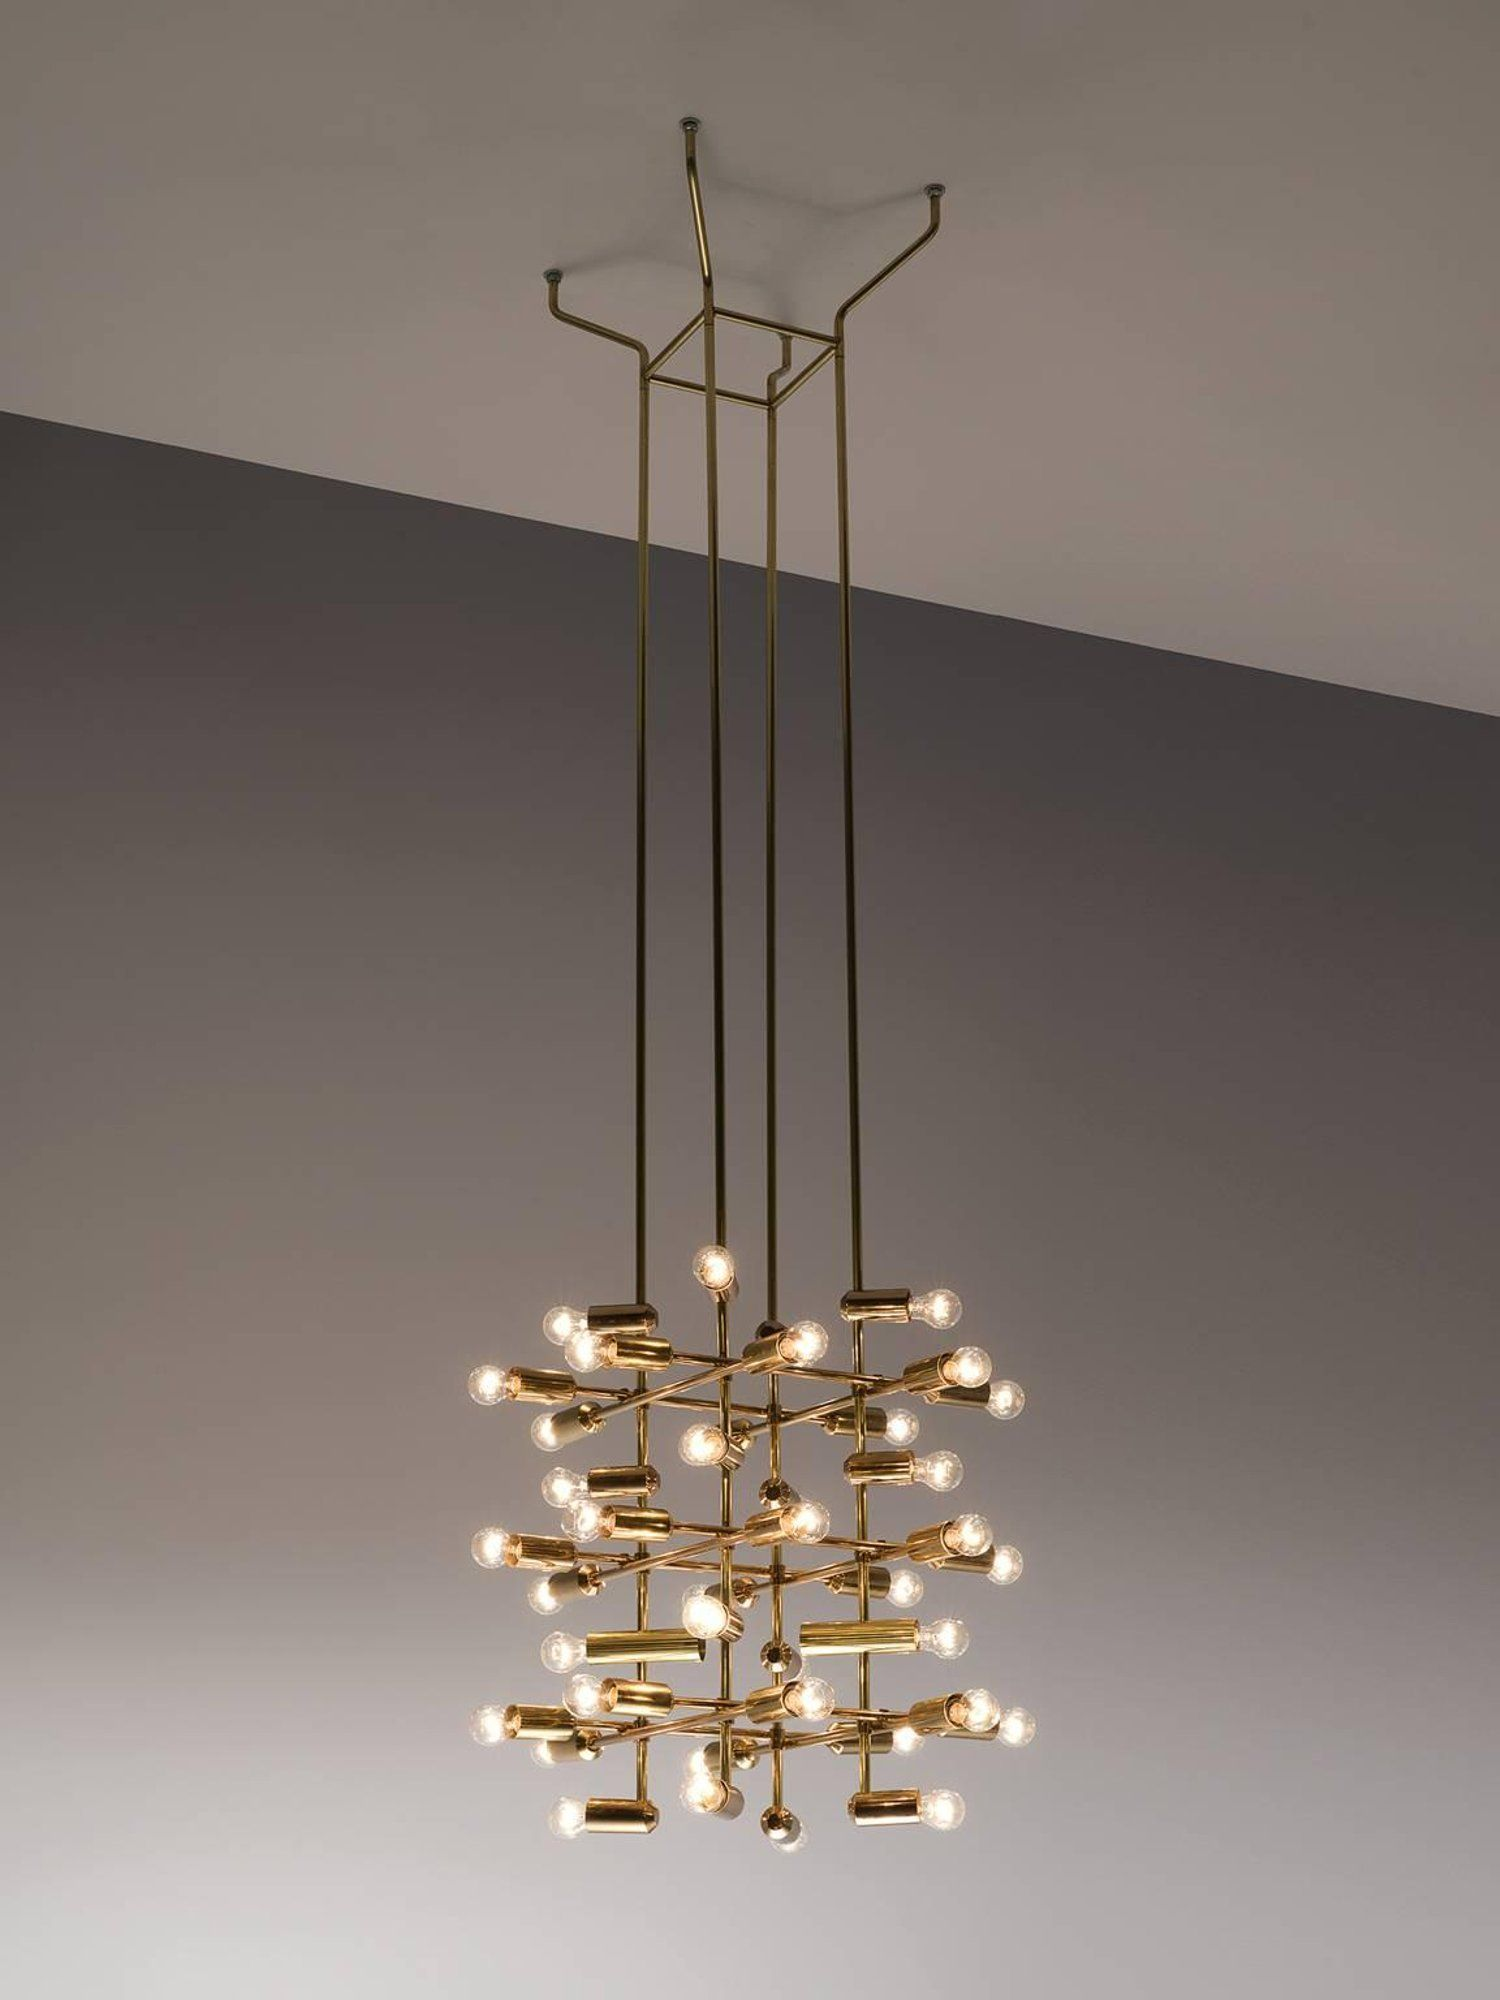 Set of large brass chandeliers with forty bulbs brass